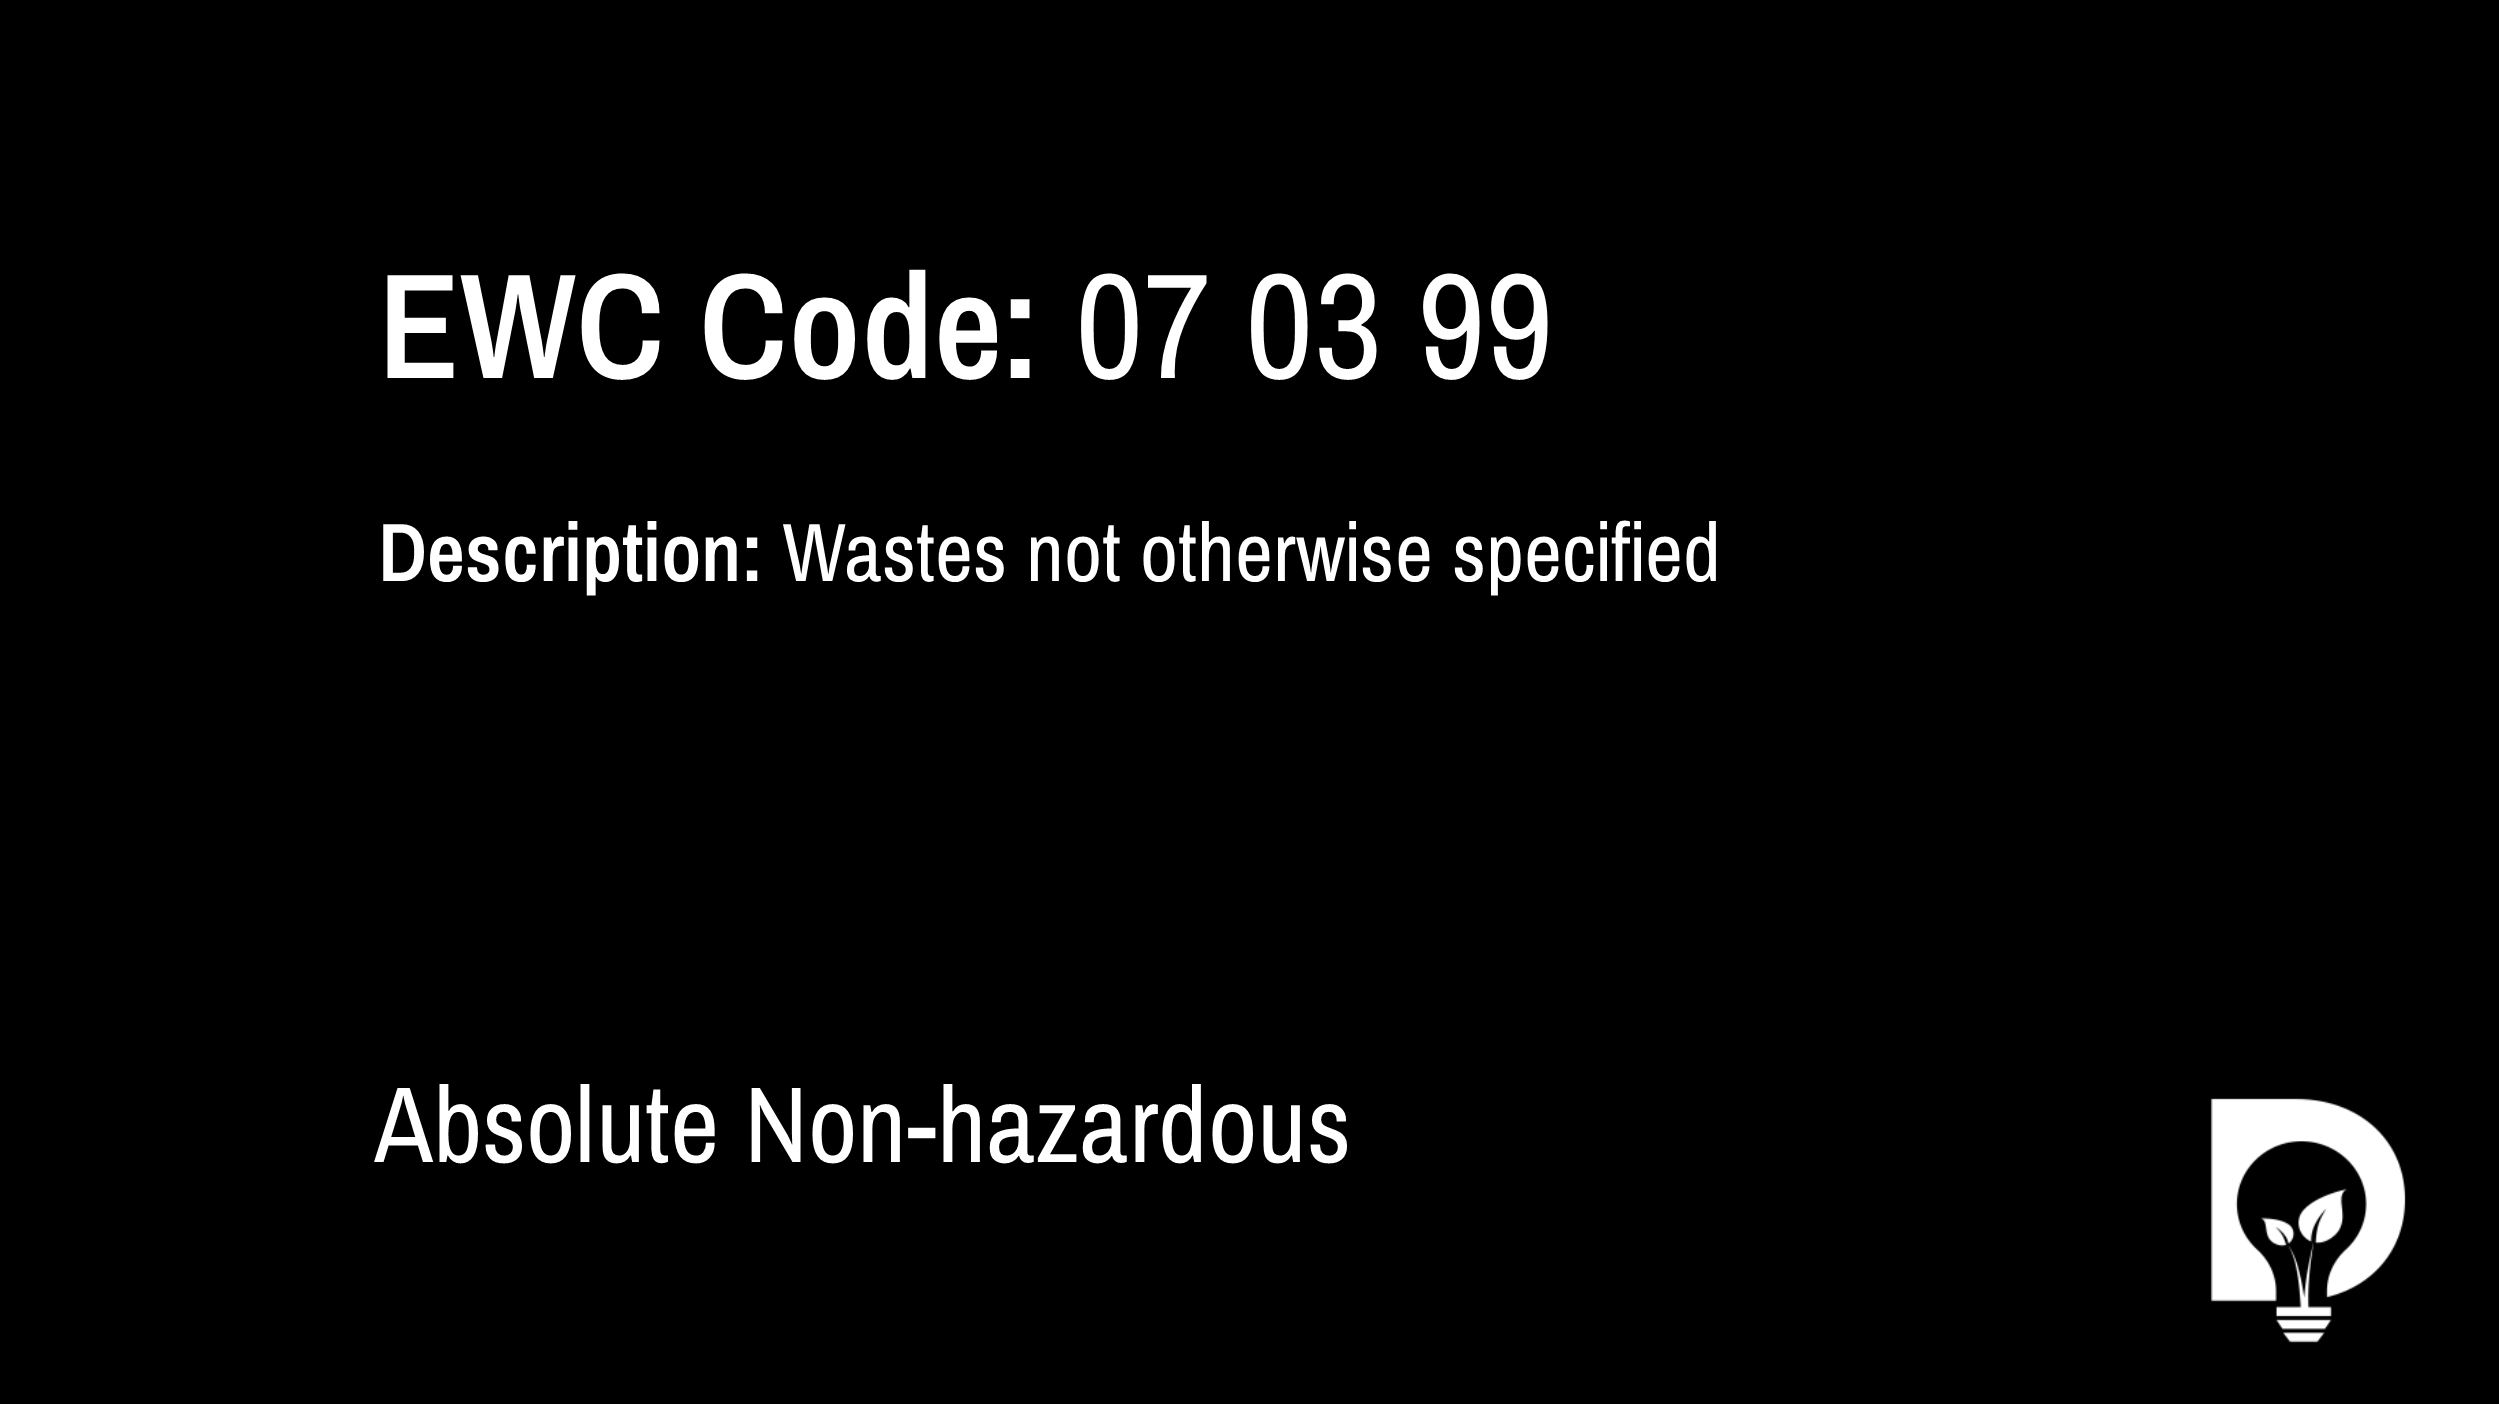 EWC Code: 07 03 99 - wastes not otherwise specified. Type: Absolute Non-hazardous. Image by Dsposal